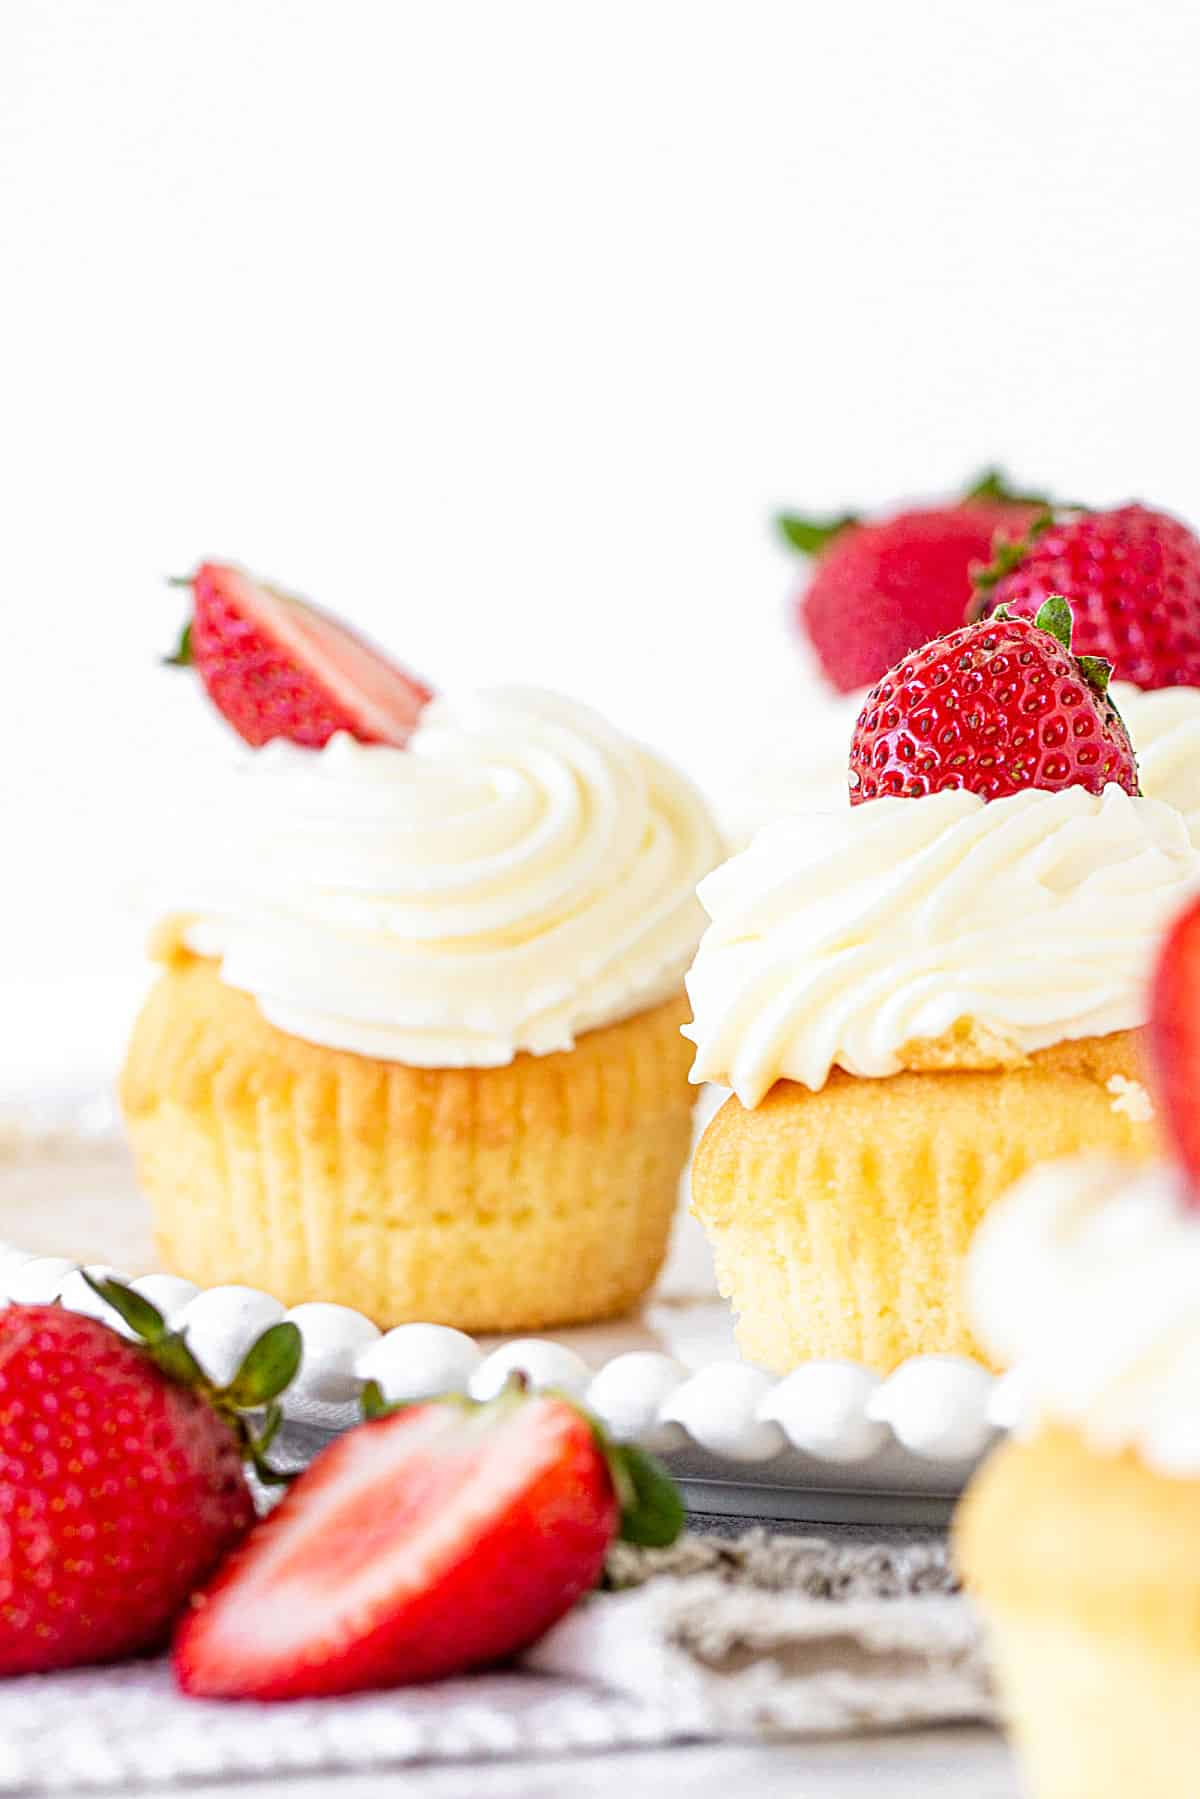 Two cupcakes topped with whipped cream and strawberries, white background, fresh strawberries